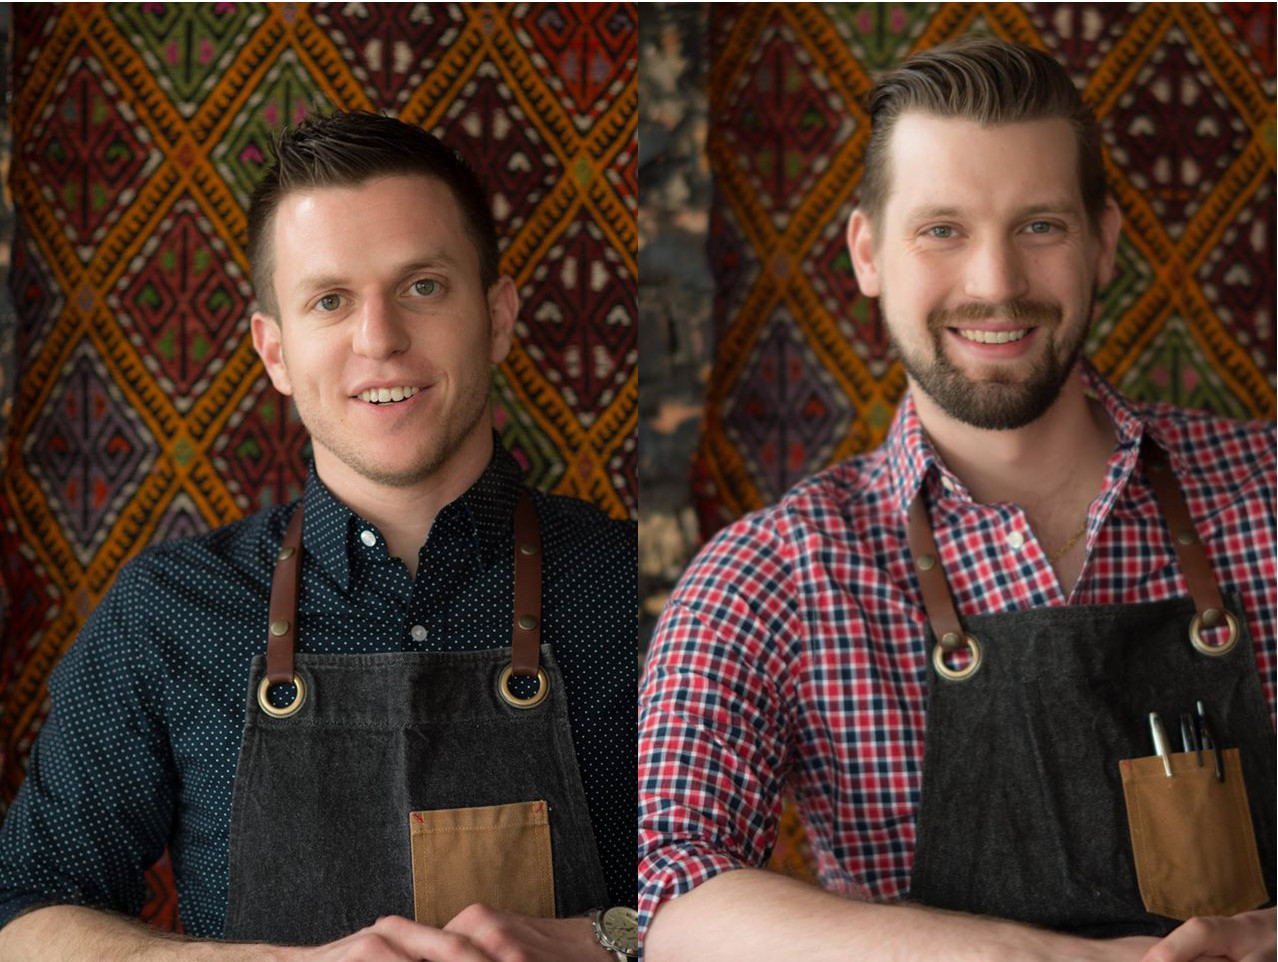 John Vermiglio and chef Josef Giacomino plan to open a new restaurant in Detroit.